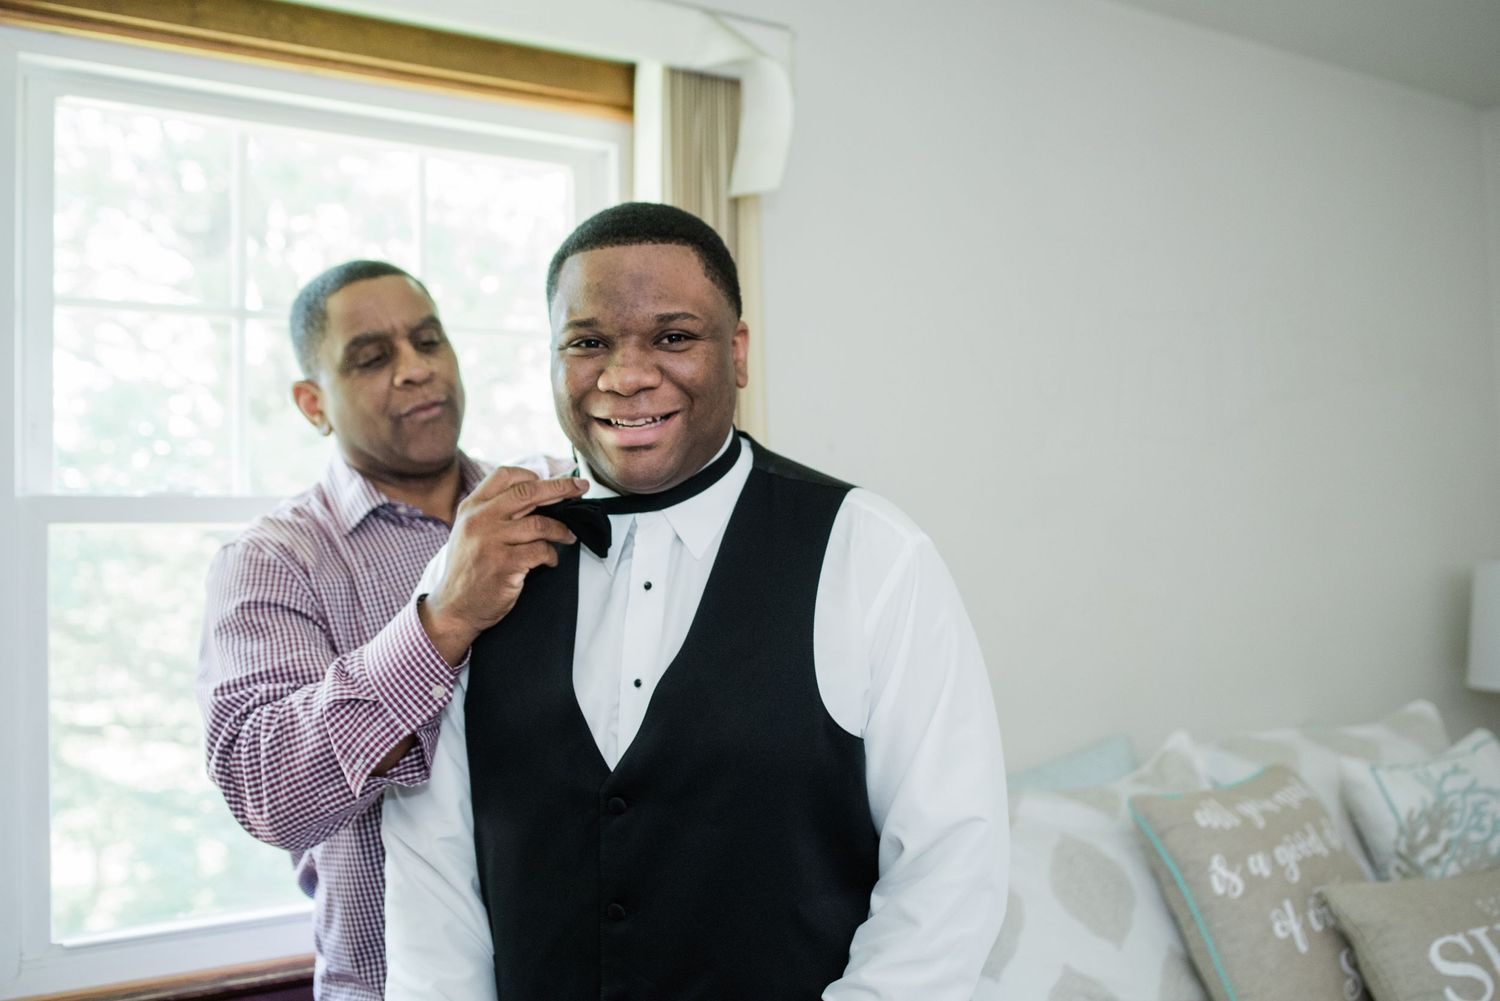 father of the groom helping groom with bow tie